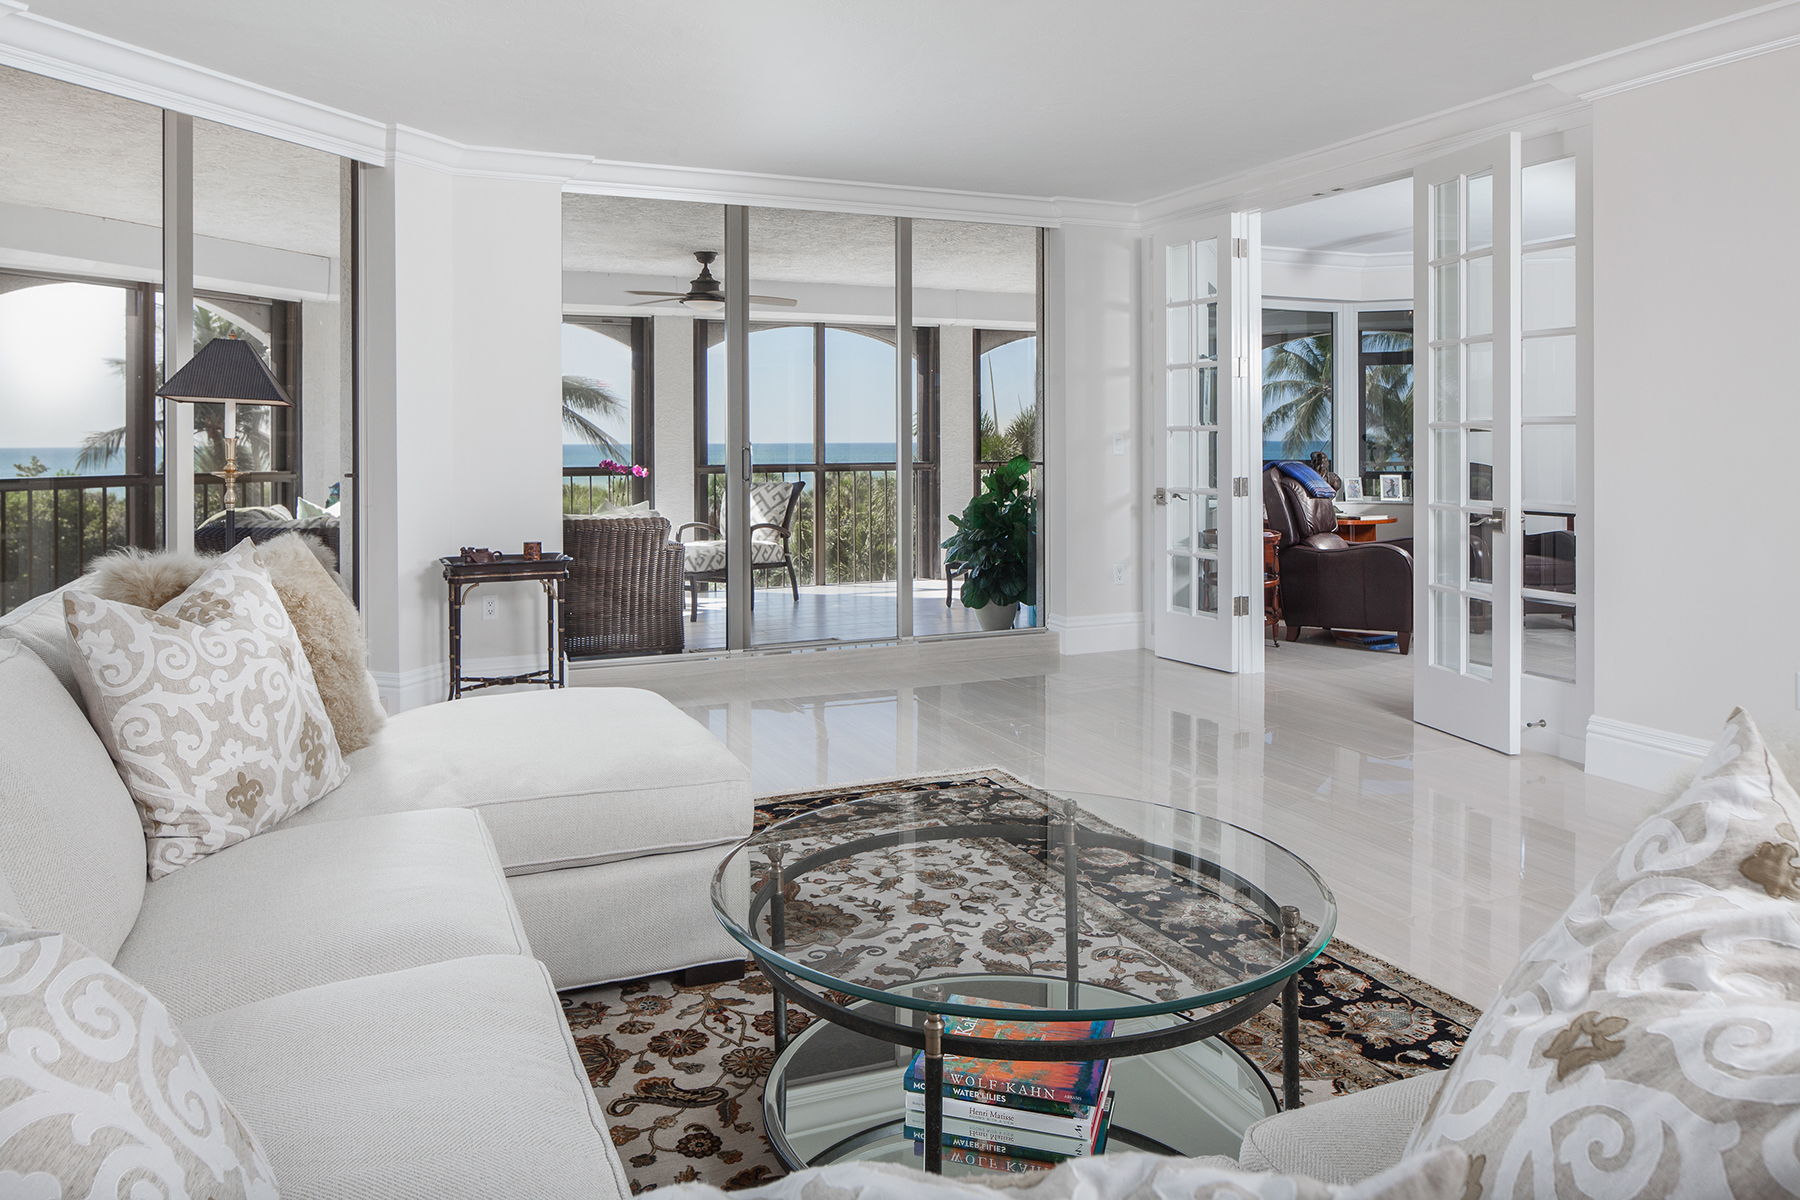 Condominium for Sale at PELICAN BAY - CARLYSLE 8171 Bay Colony Dr 201 Naples, Florida, 34108 United States